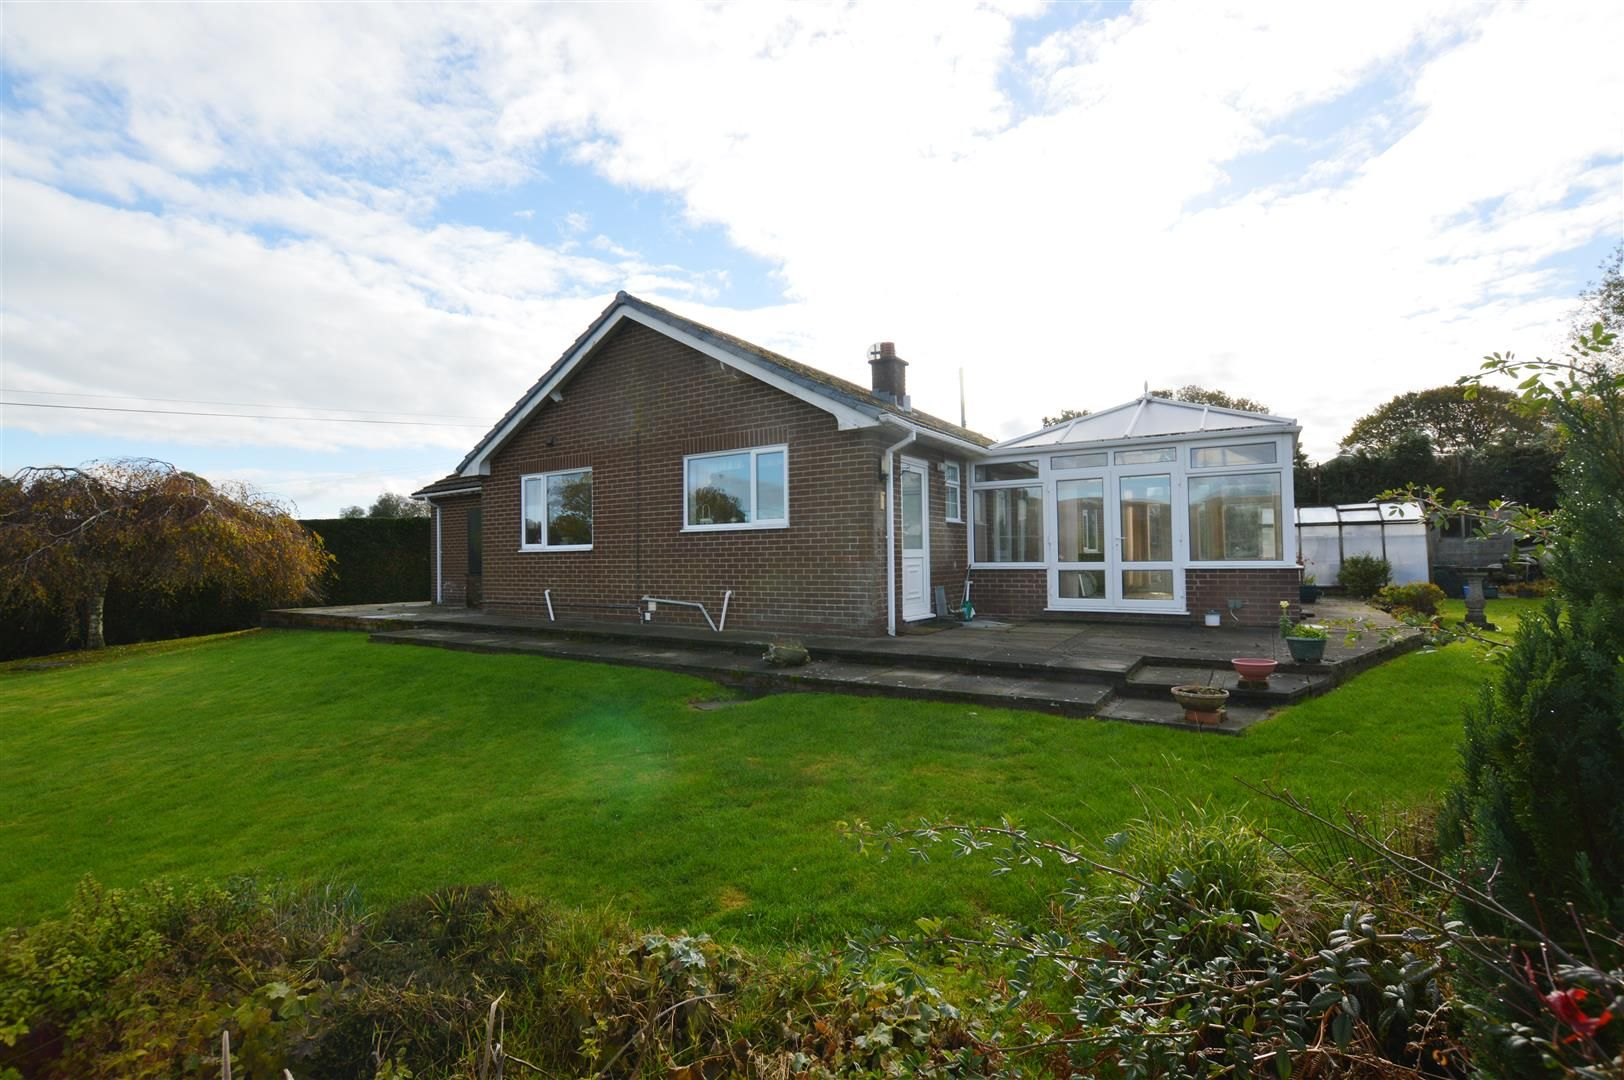 3 bed detached-bungalow for sale in Llandrindod Wells 7